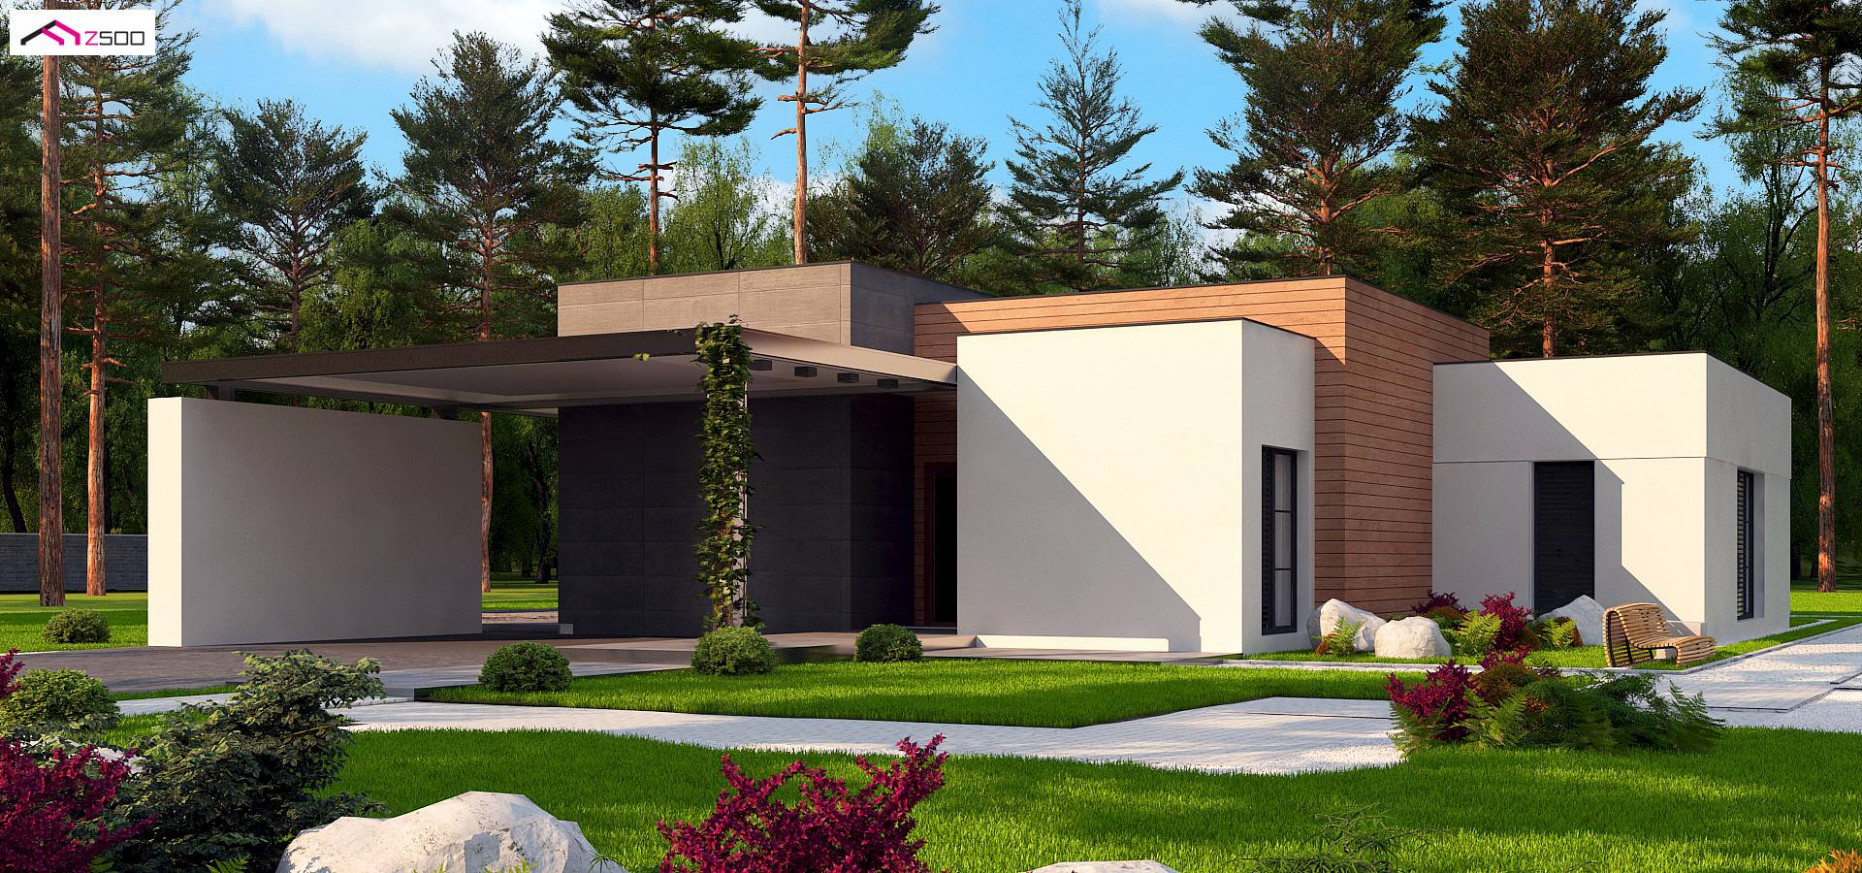 House Design Zx9 A Modern One Storey House With A Carport ..